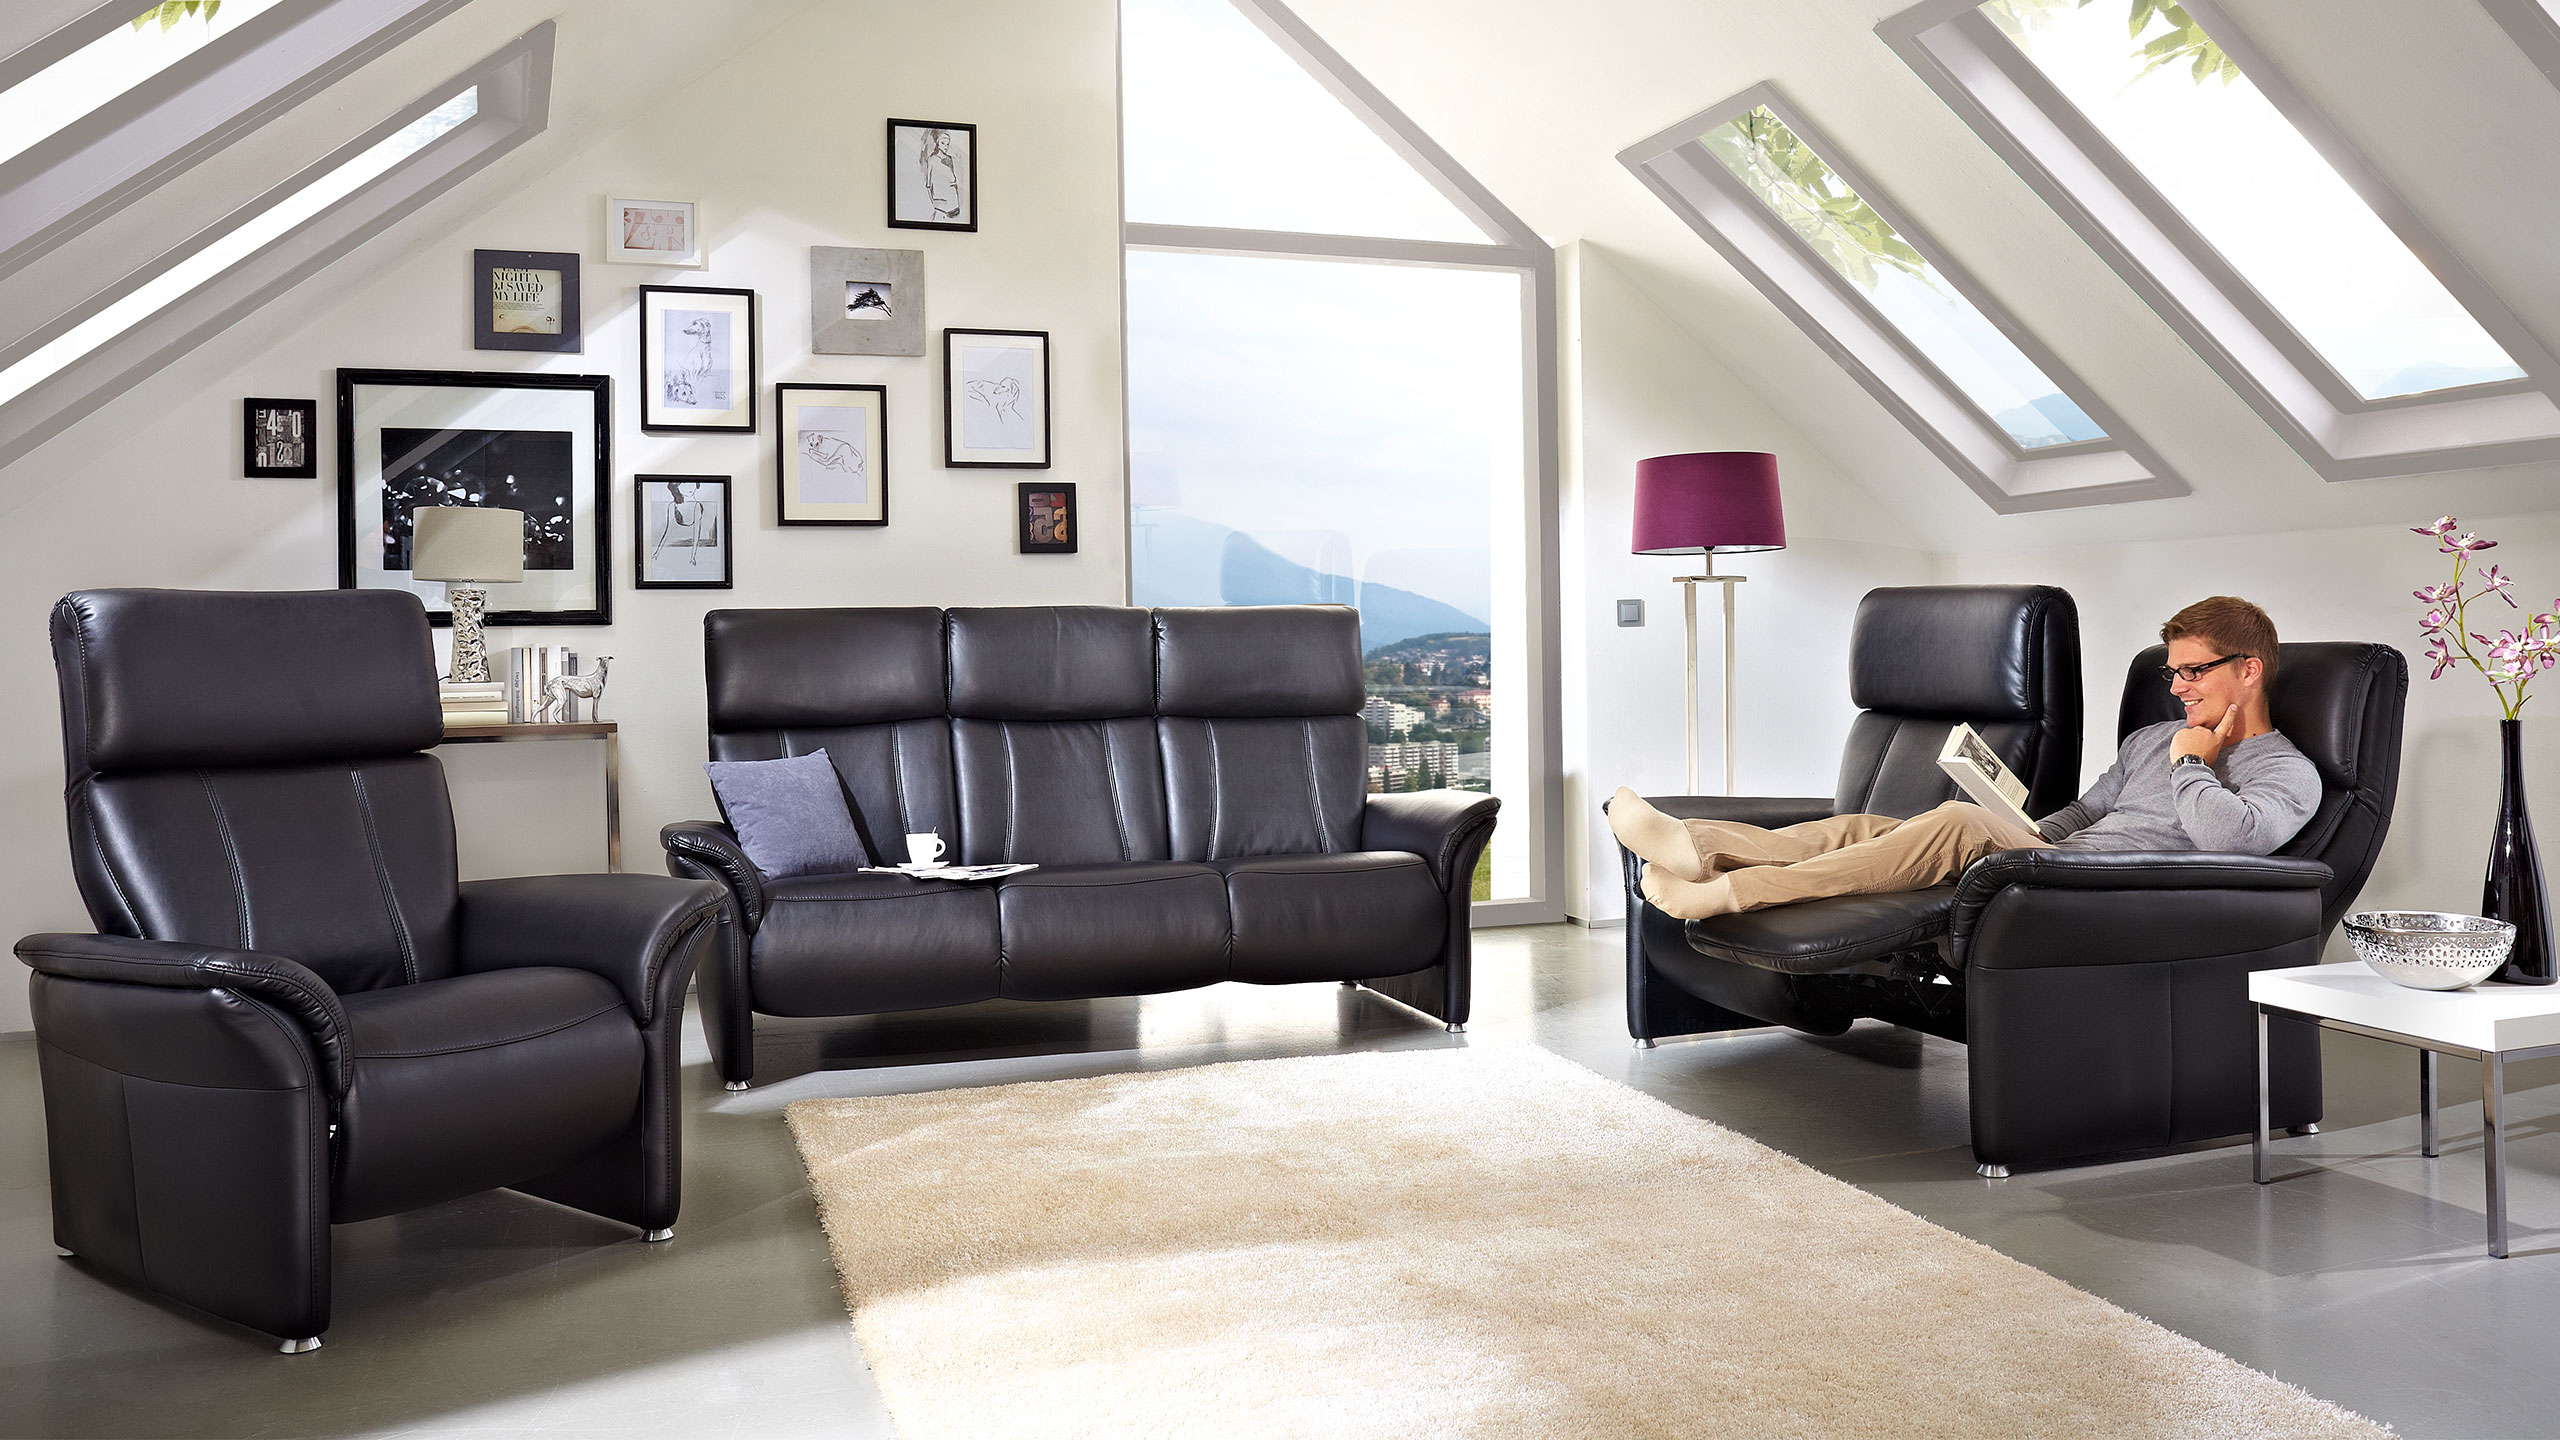 Magic Comfort Sofa 152 cm Kunstleder Schwarz